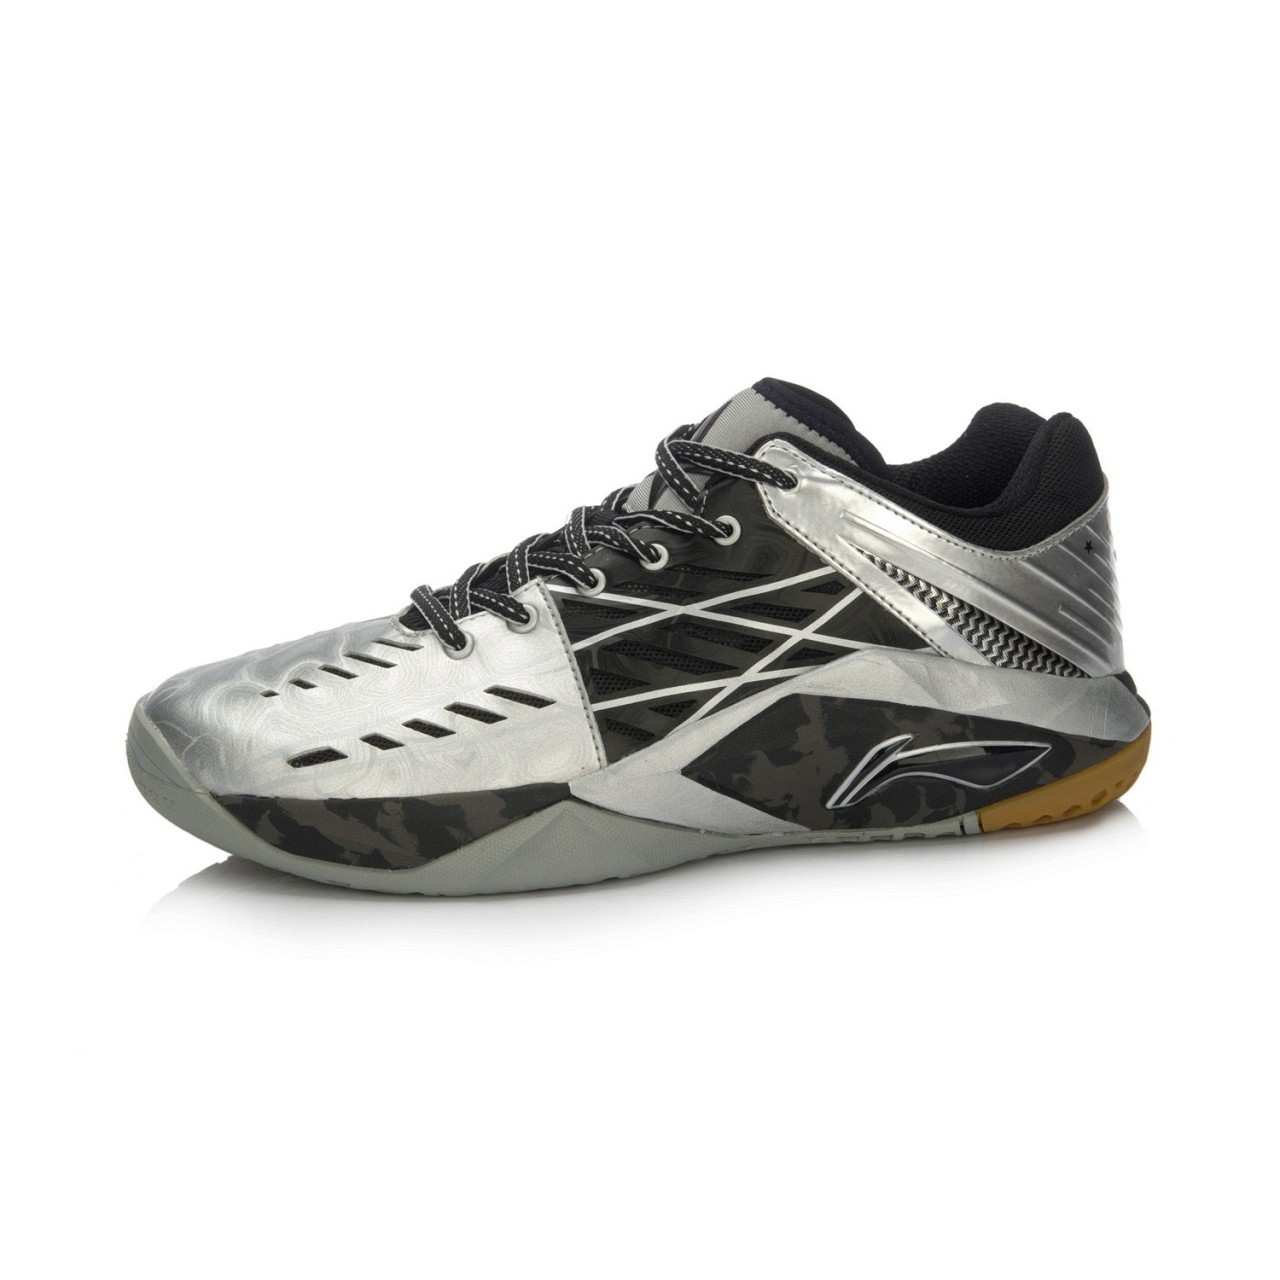 Li-Ning Chen Long 2016 Summer Badminton Shoes - Black